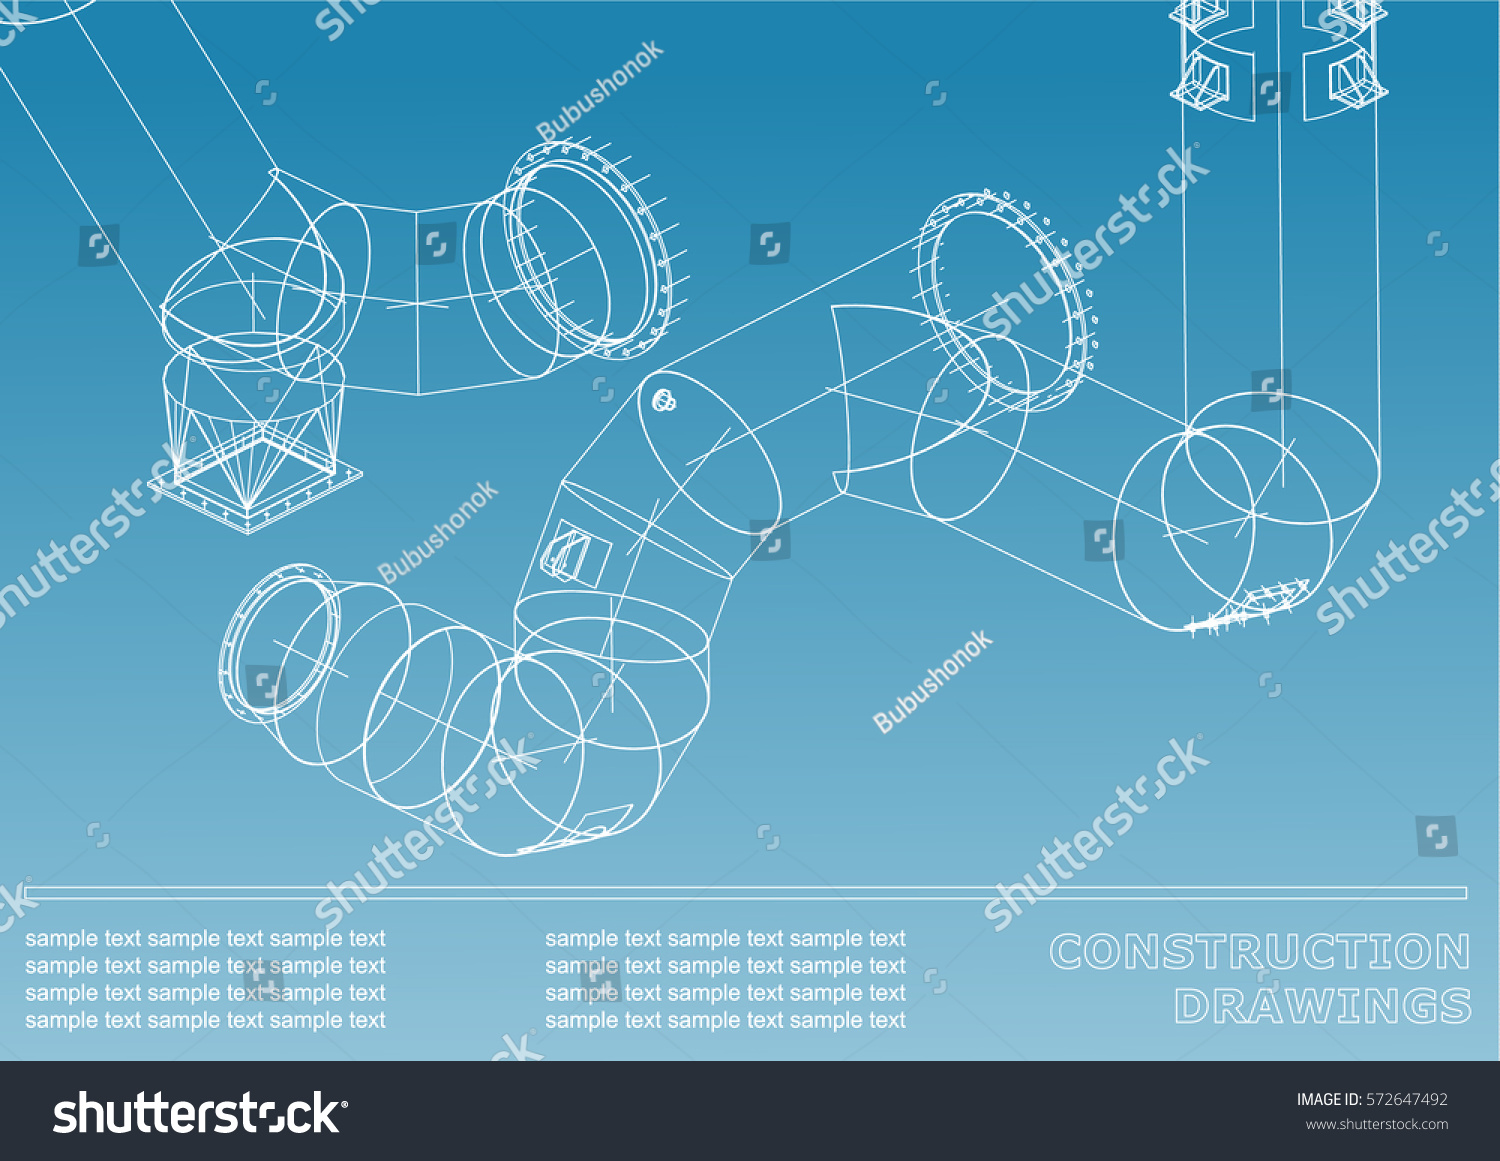 Drawings Steel Structures Pipes Pipe 3 D Stock Vector (Royalty Free ...